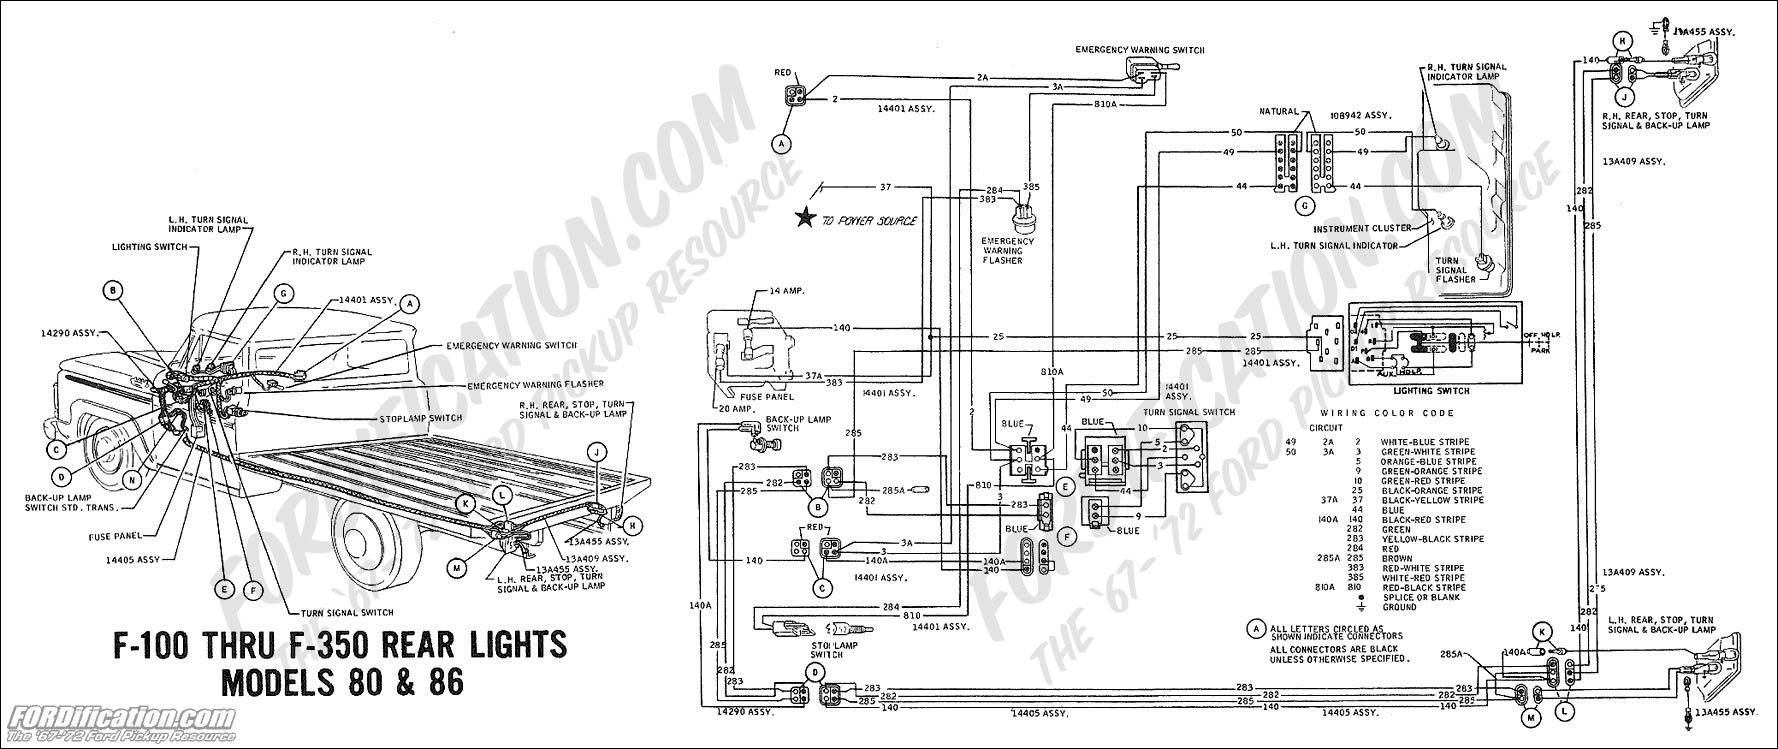 Ford F700 Distributor Wiring Schematics Library Coleman Laramie Diagram 1969 F 100 Thru 350 Rear Lights Models 80